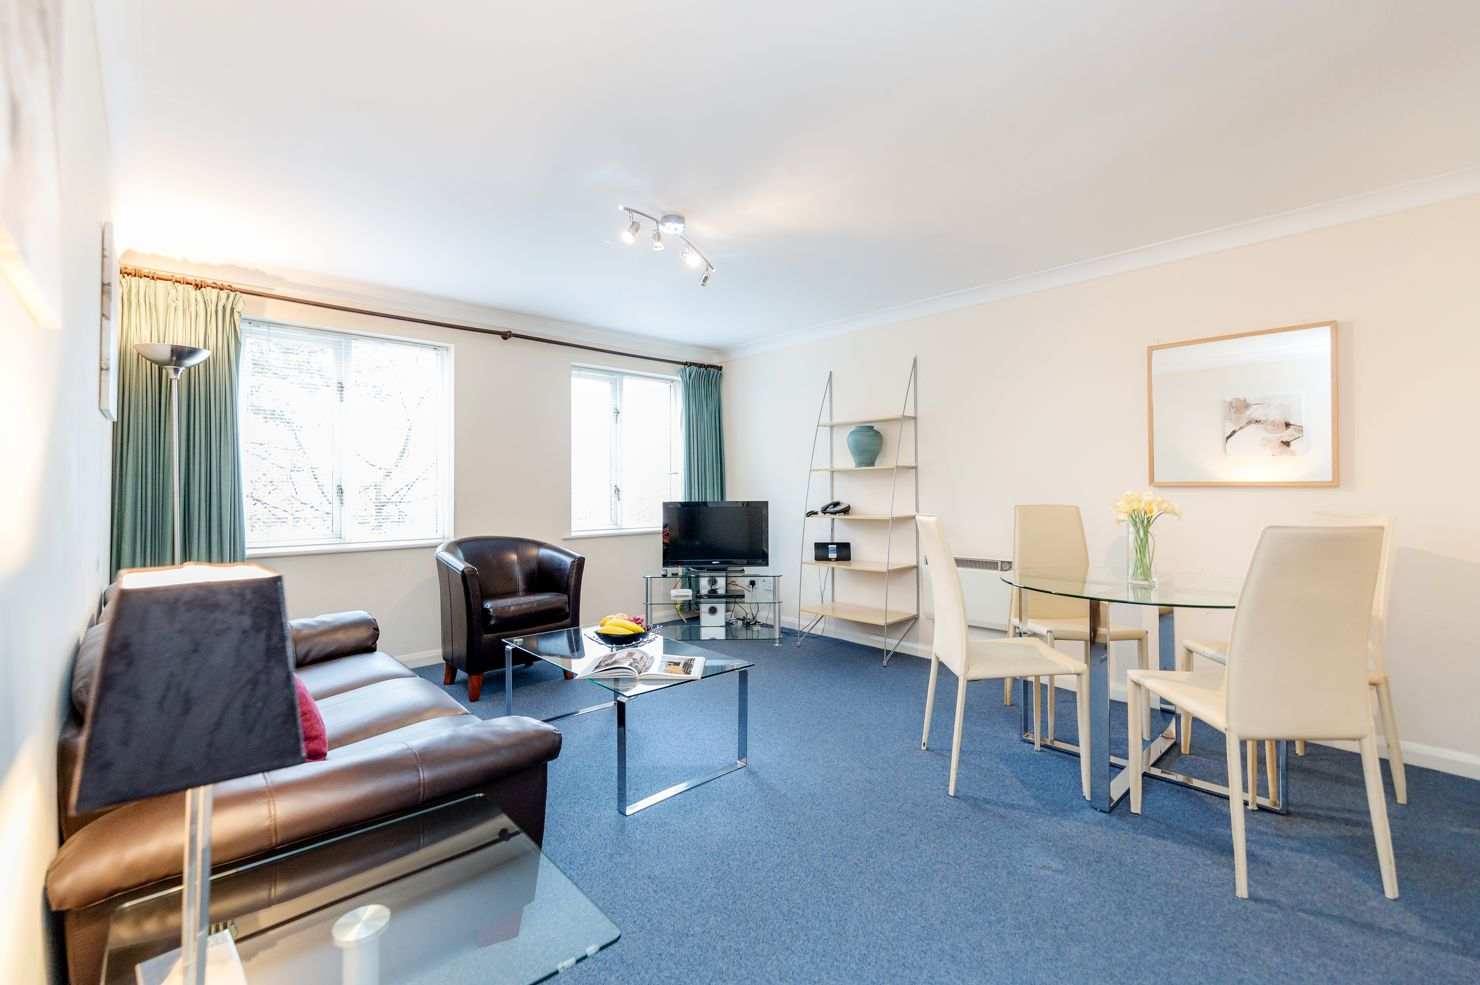 Looking-for-affordable-accommodation-in-Surrey?-why-not-book-our-lovely-Kingston-Corporate-Apartments-at-Regents-Court.-Call-today-for-great-rates.